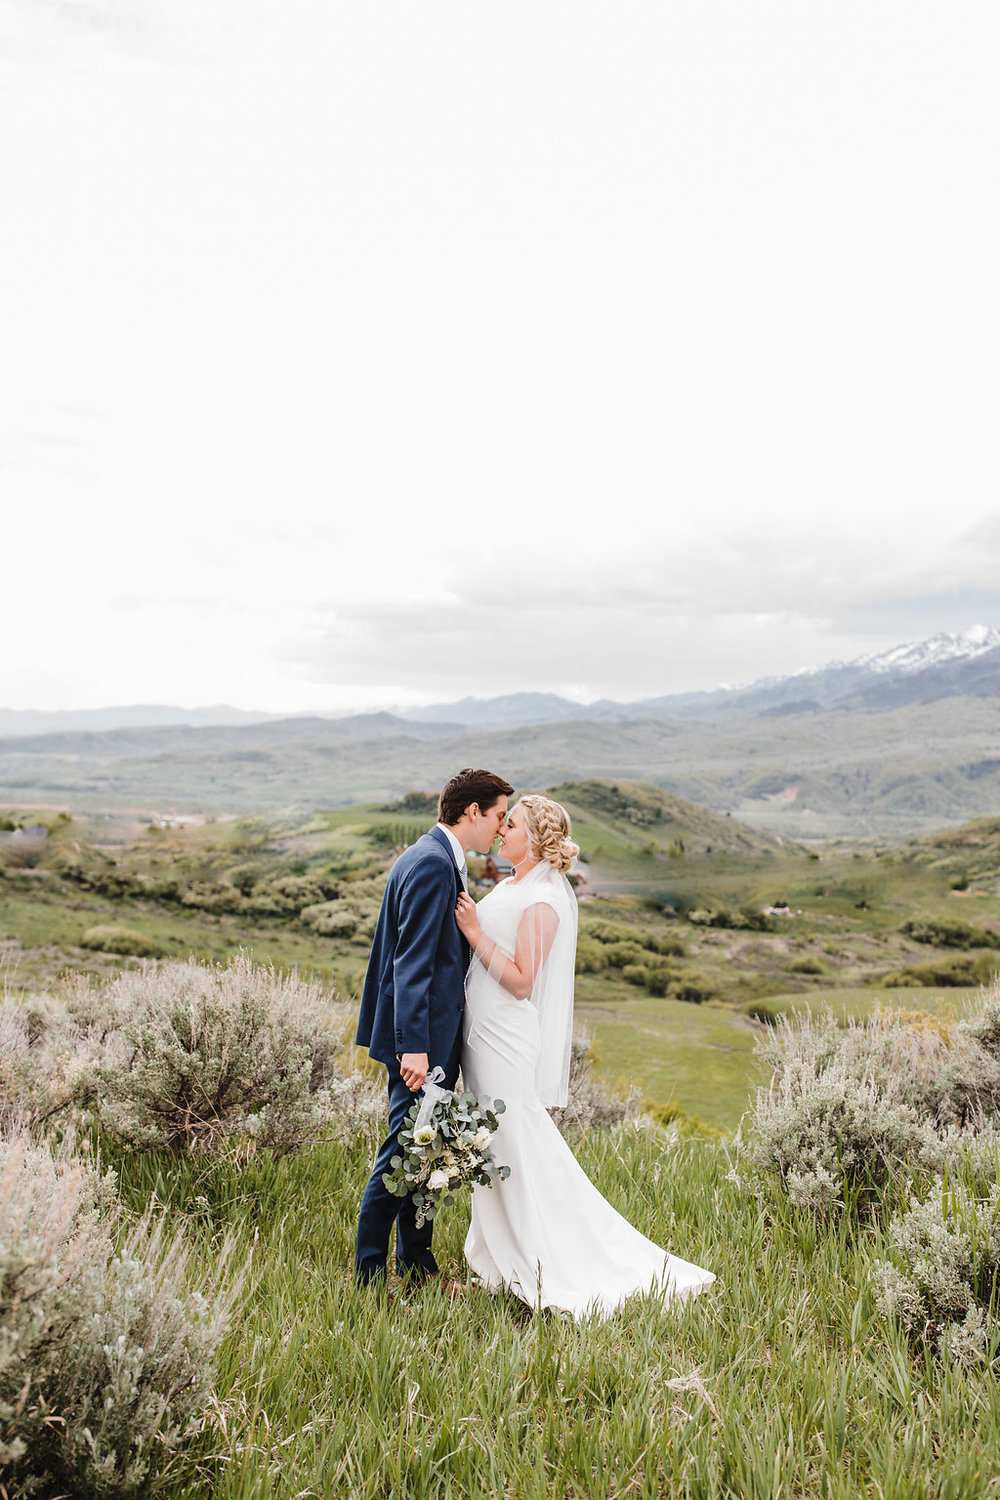 professional wedding photos bridals formals photographer in a mountain green canyon calli richards cache valley wedding photography